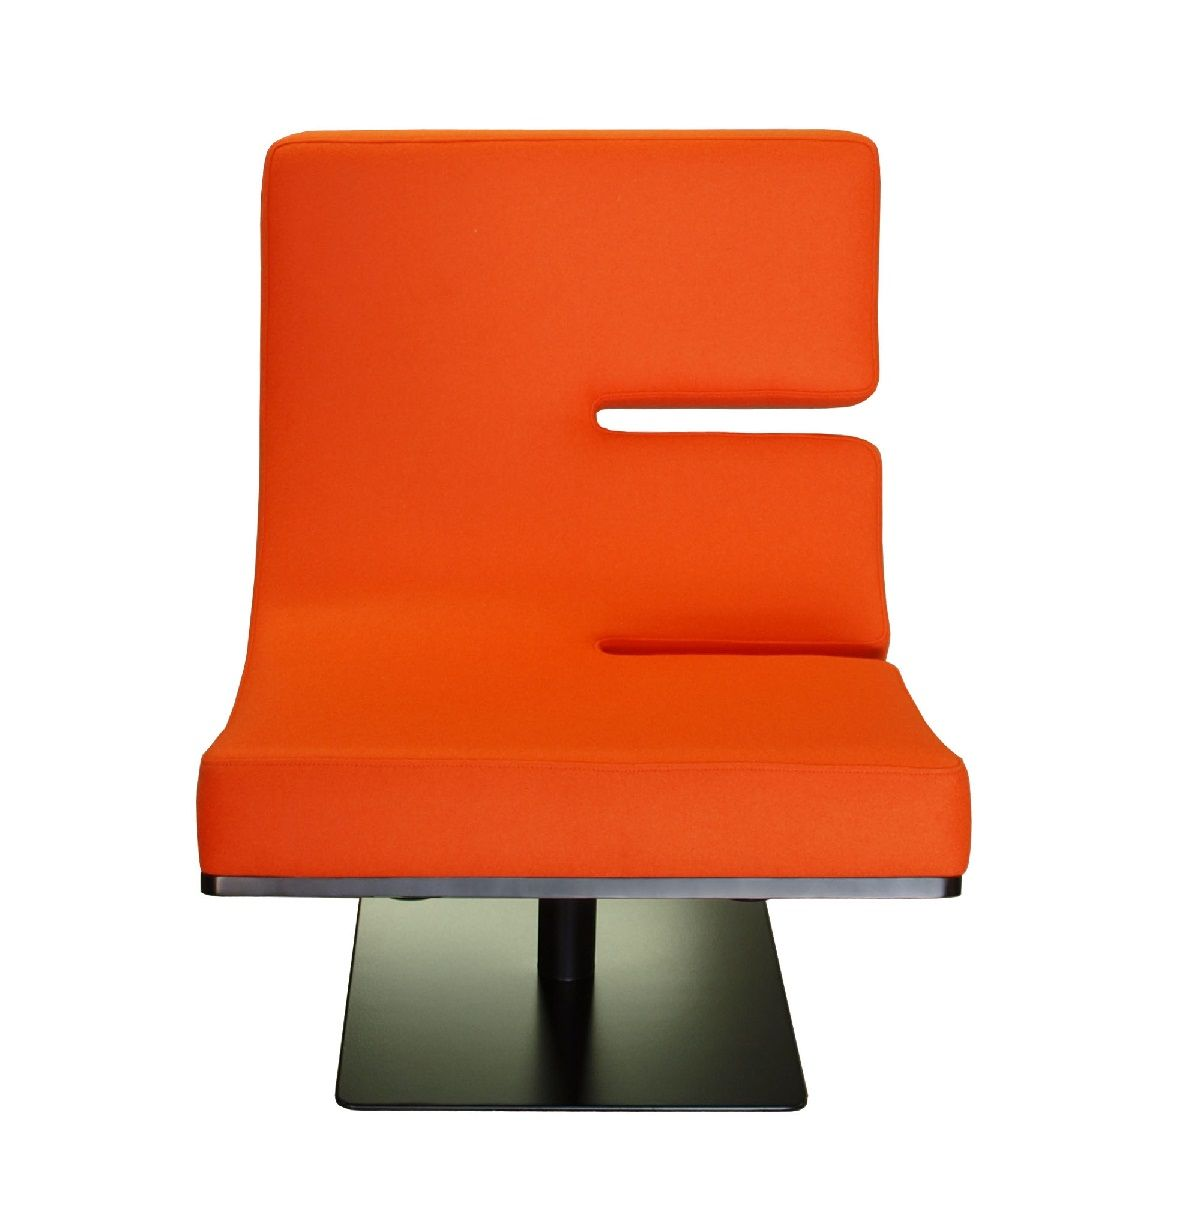 TABISSO.com Typographia Lounge Chair Letter E #letter #furniture